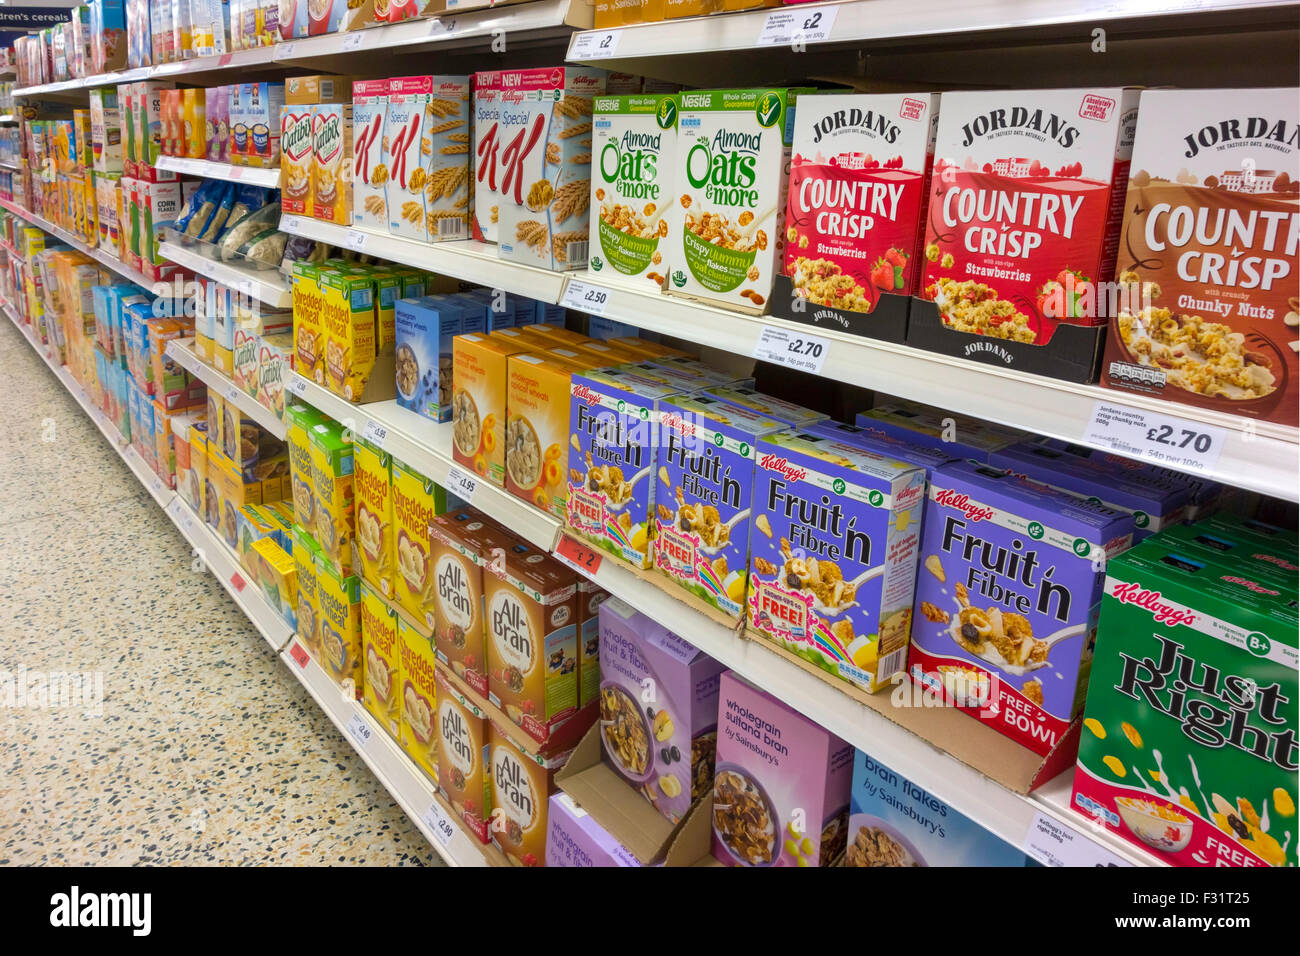 marketing for cereal product Powell told the analysts that some 90% of cheerios products will be gluten-free, and the company's cereal business unit is working on an aggressive marketing campaign to get the word out.